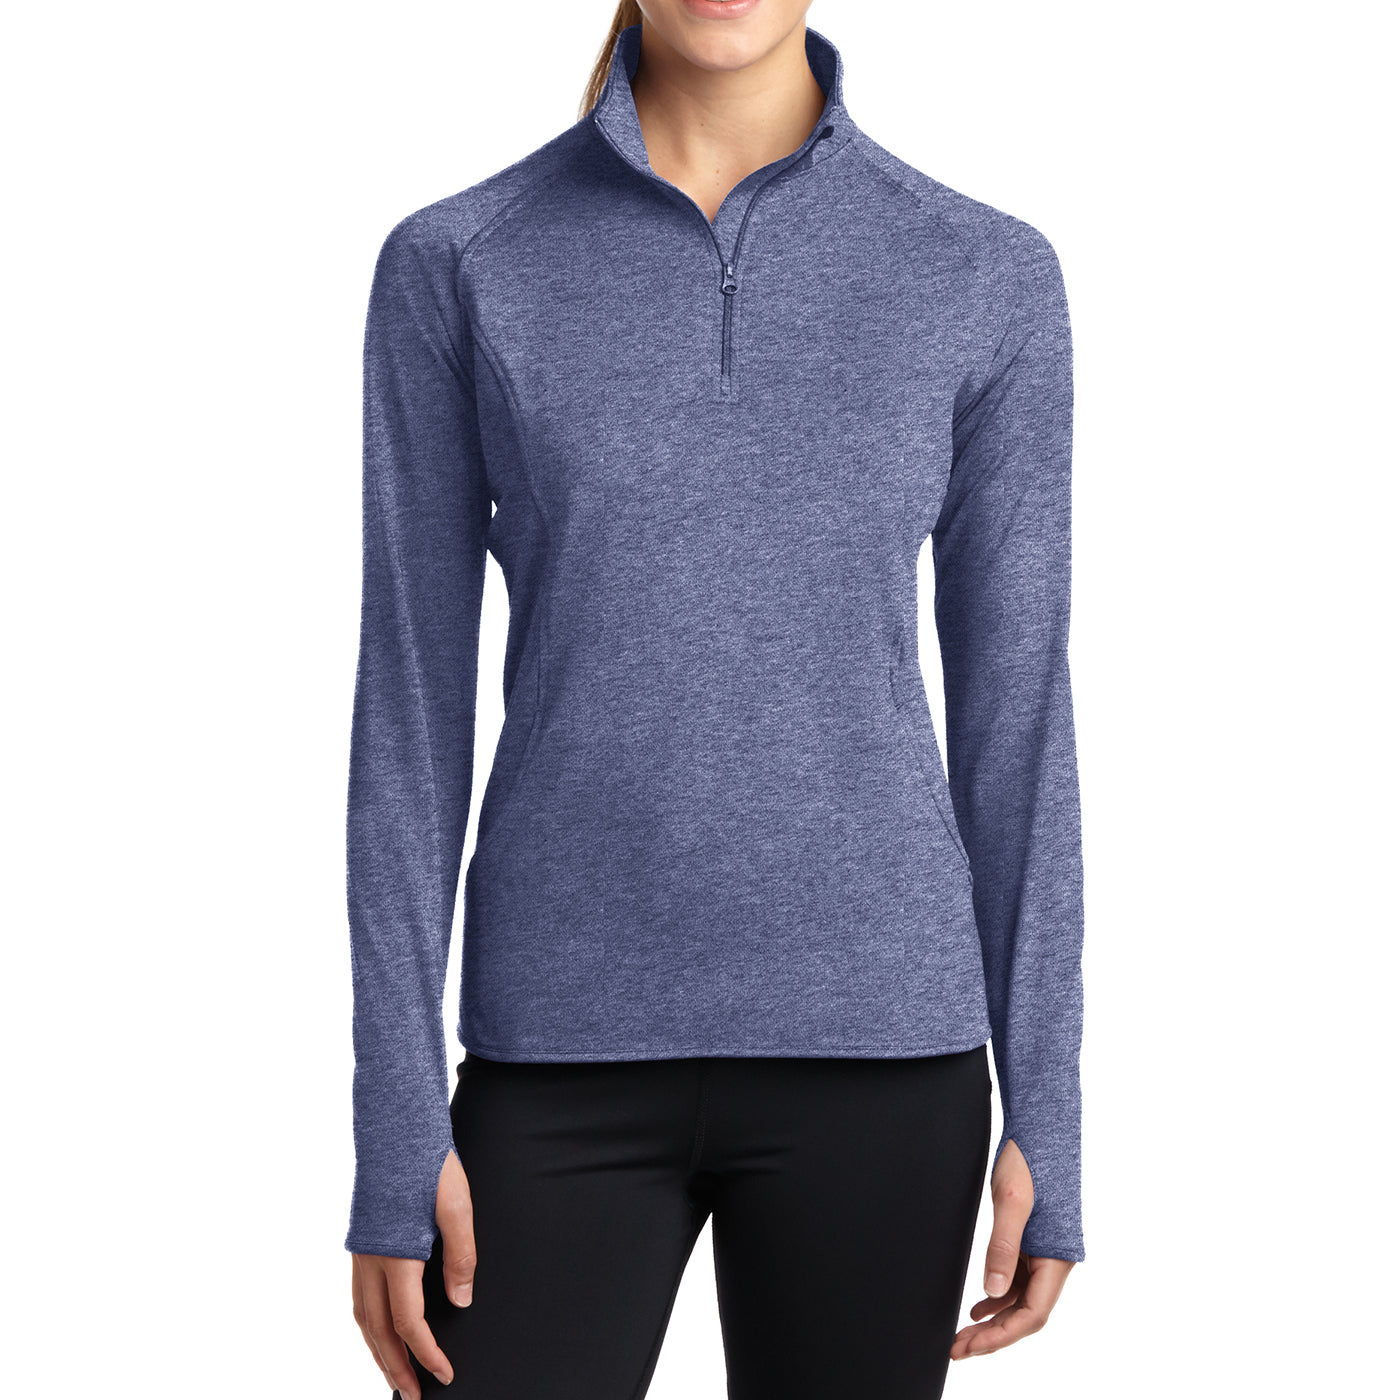 Women's Sport Wick Stretch 1/2 Zip Pullover - True Navy Heather - Front